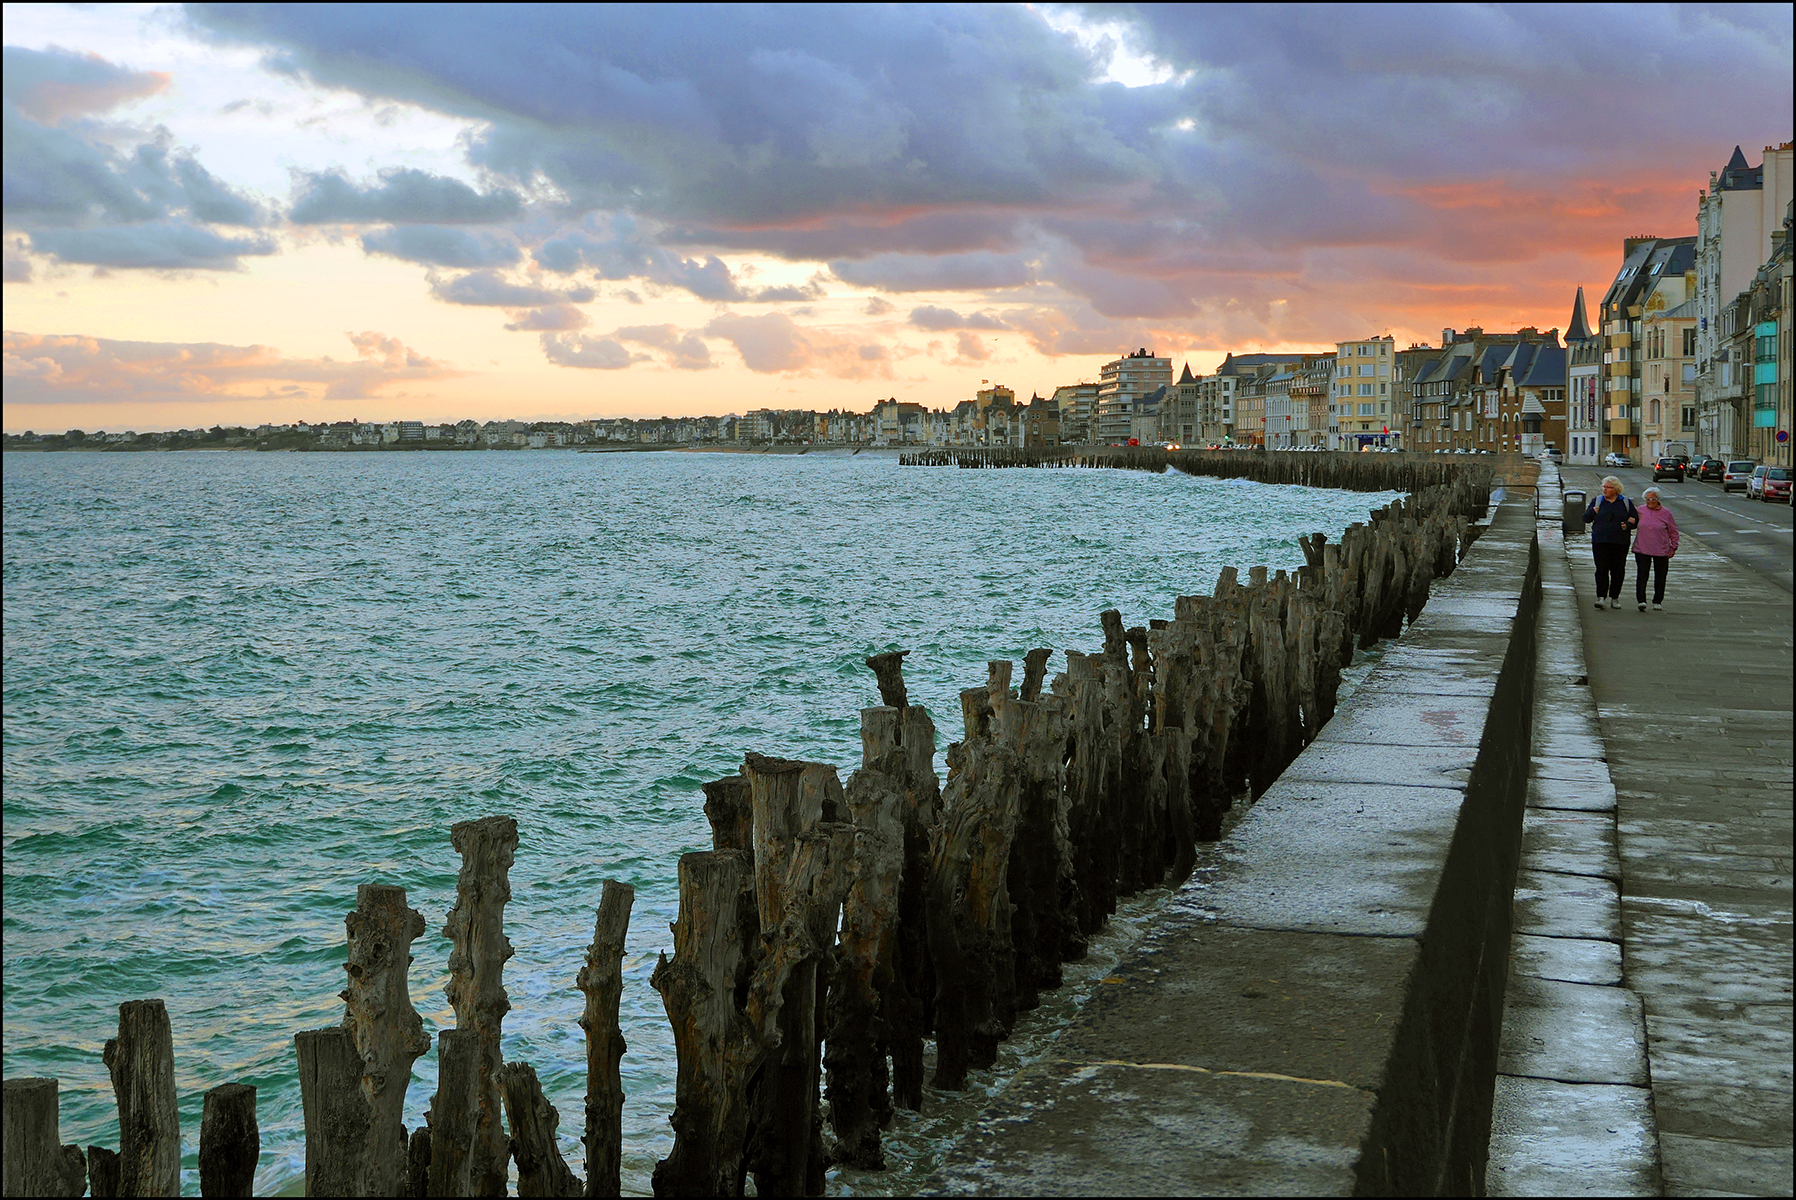 Sunrise Saint Malo, with Twiglets by sags